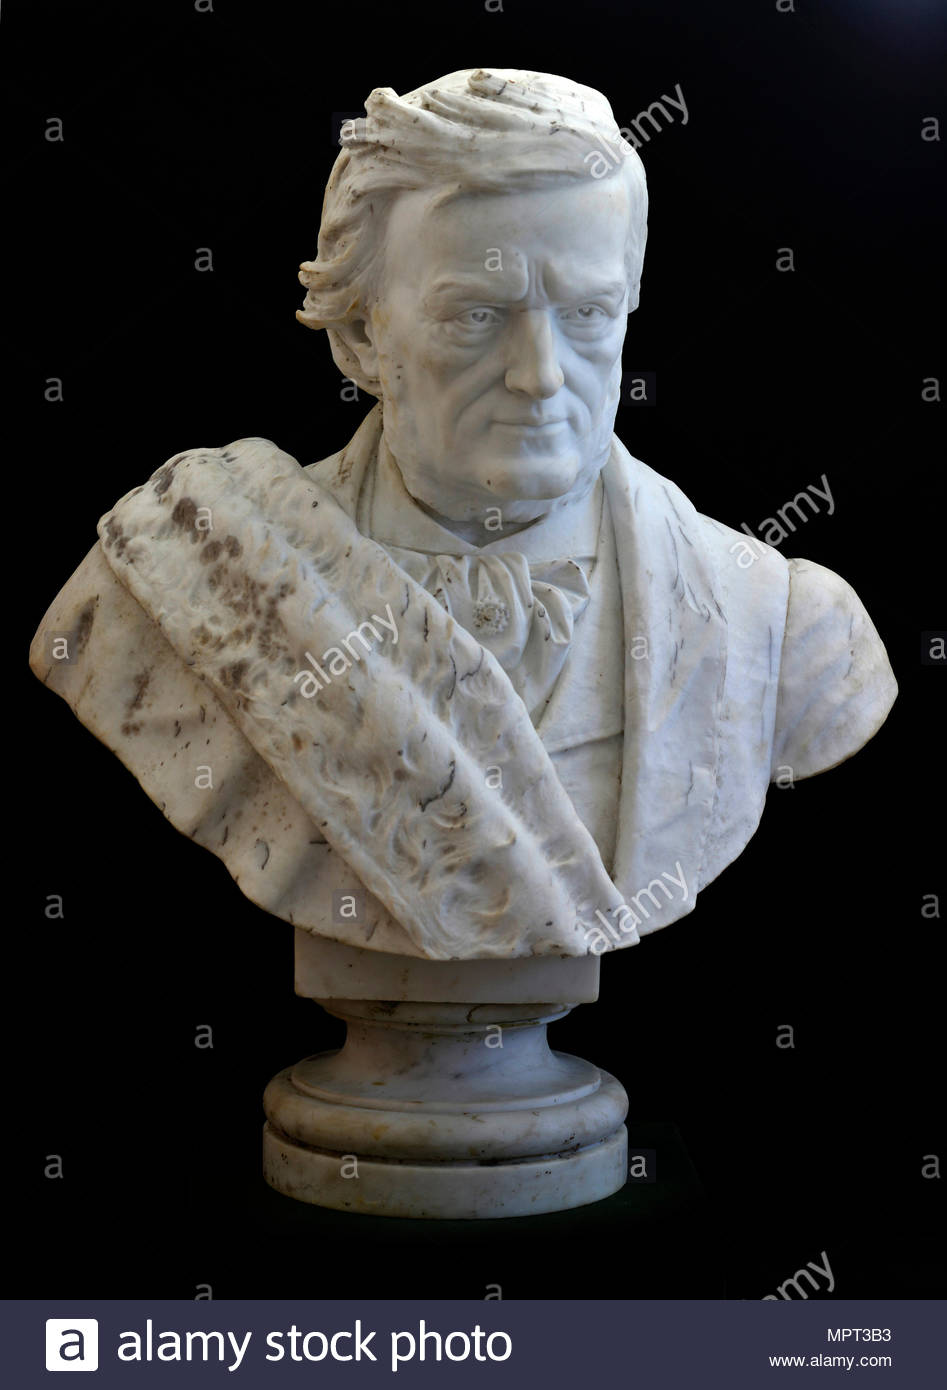 Bust of Richard Wagner, 1873. - Stock Image